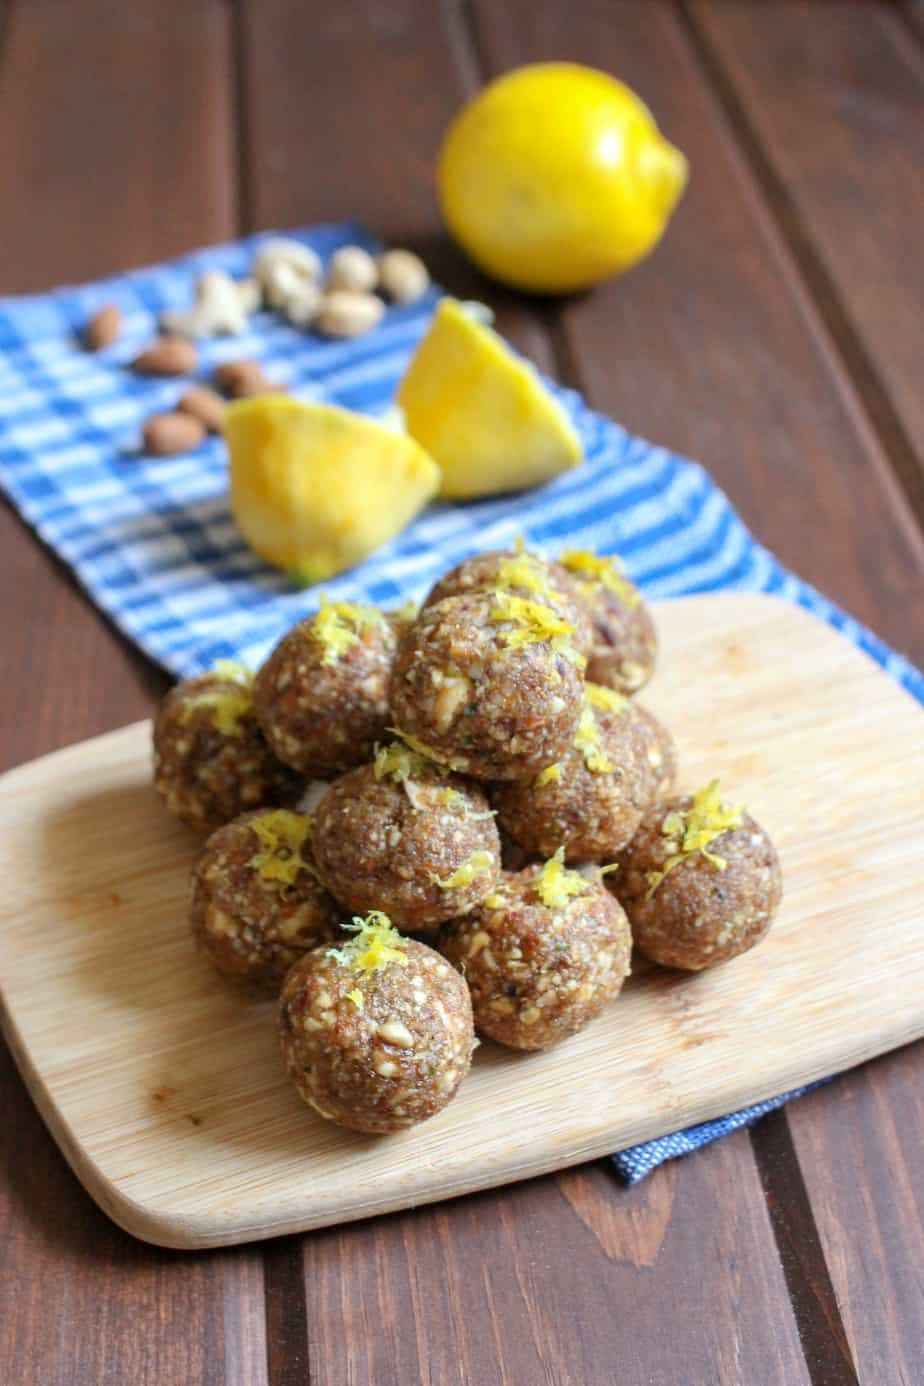 Homemade Lemon Larabar Bites - made with less sugar! | www.frugalnutrition.com